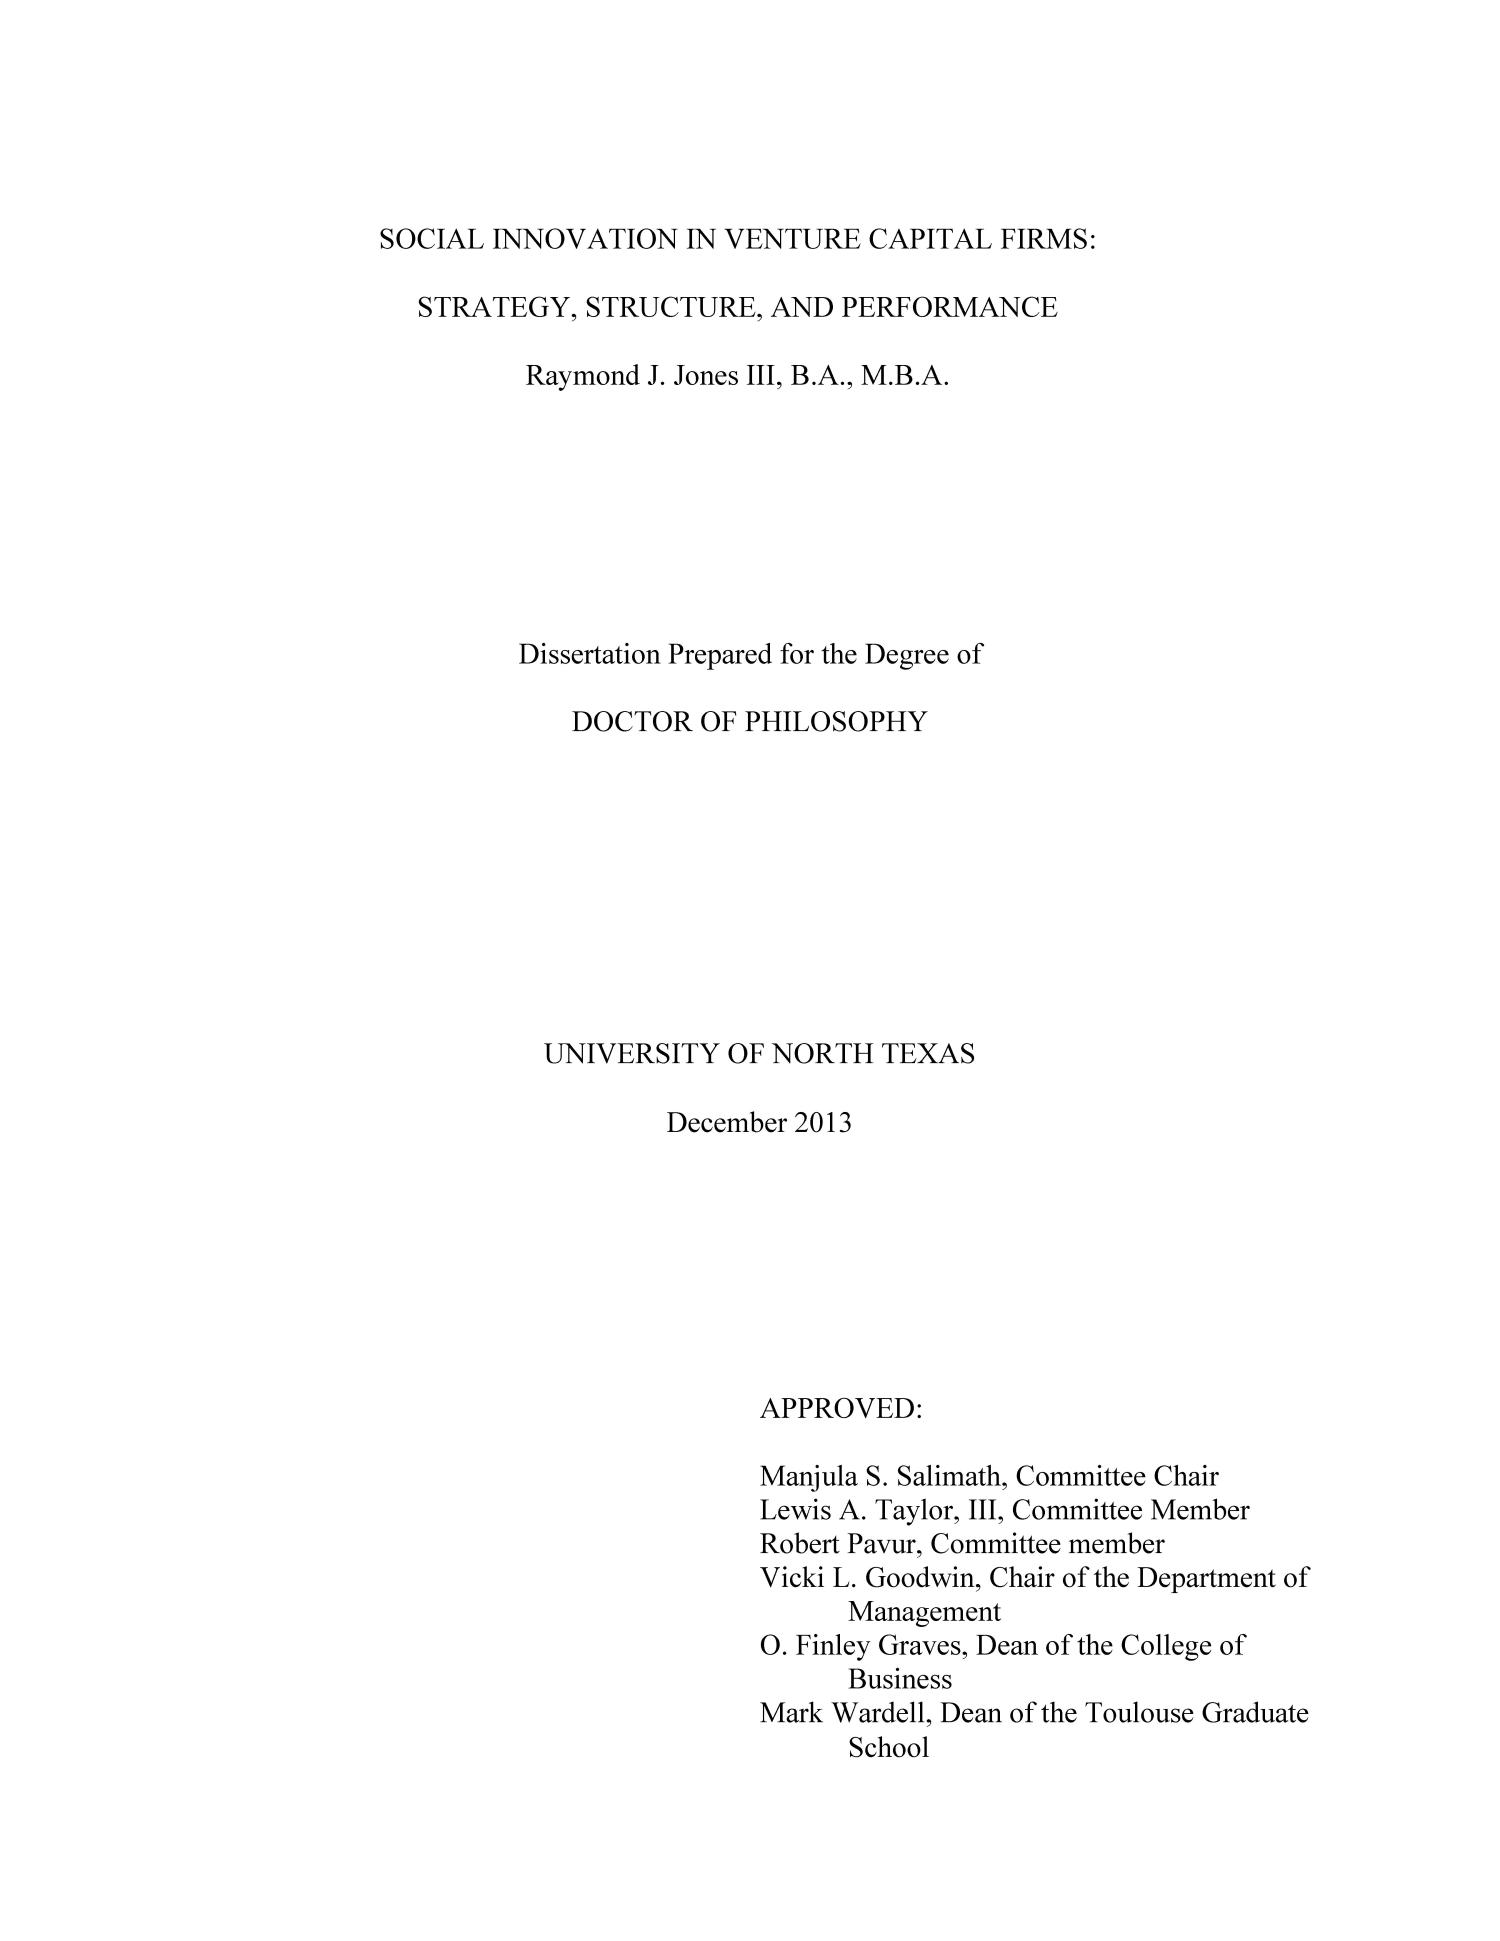 Capital structure firm performance dissertation